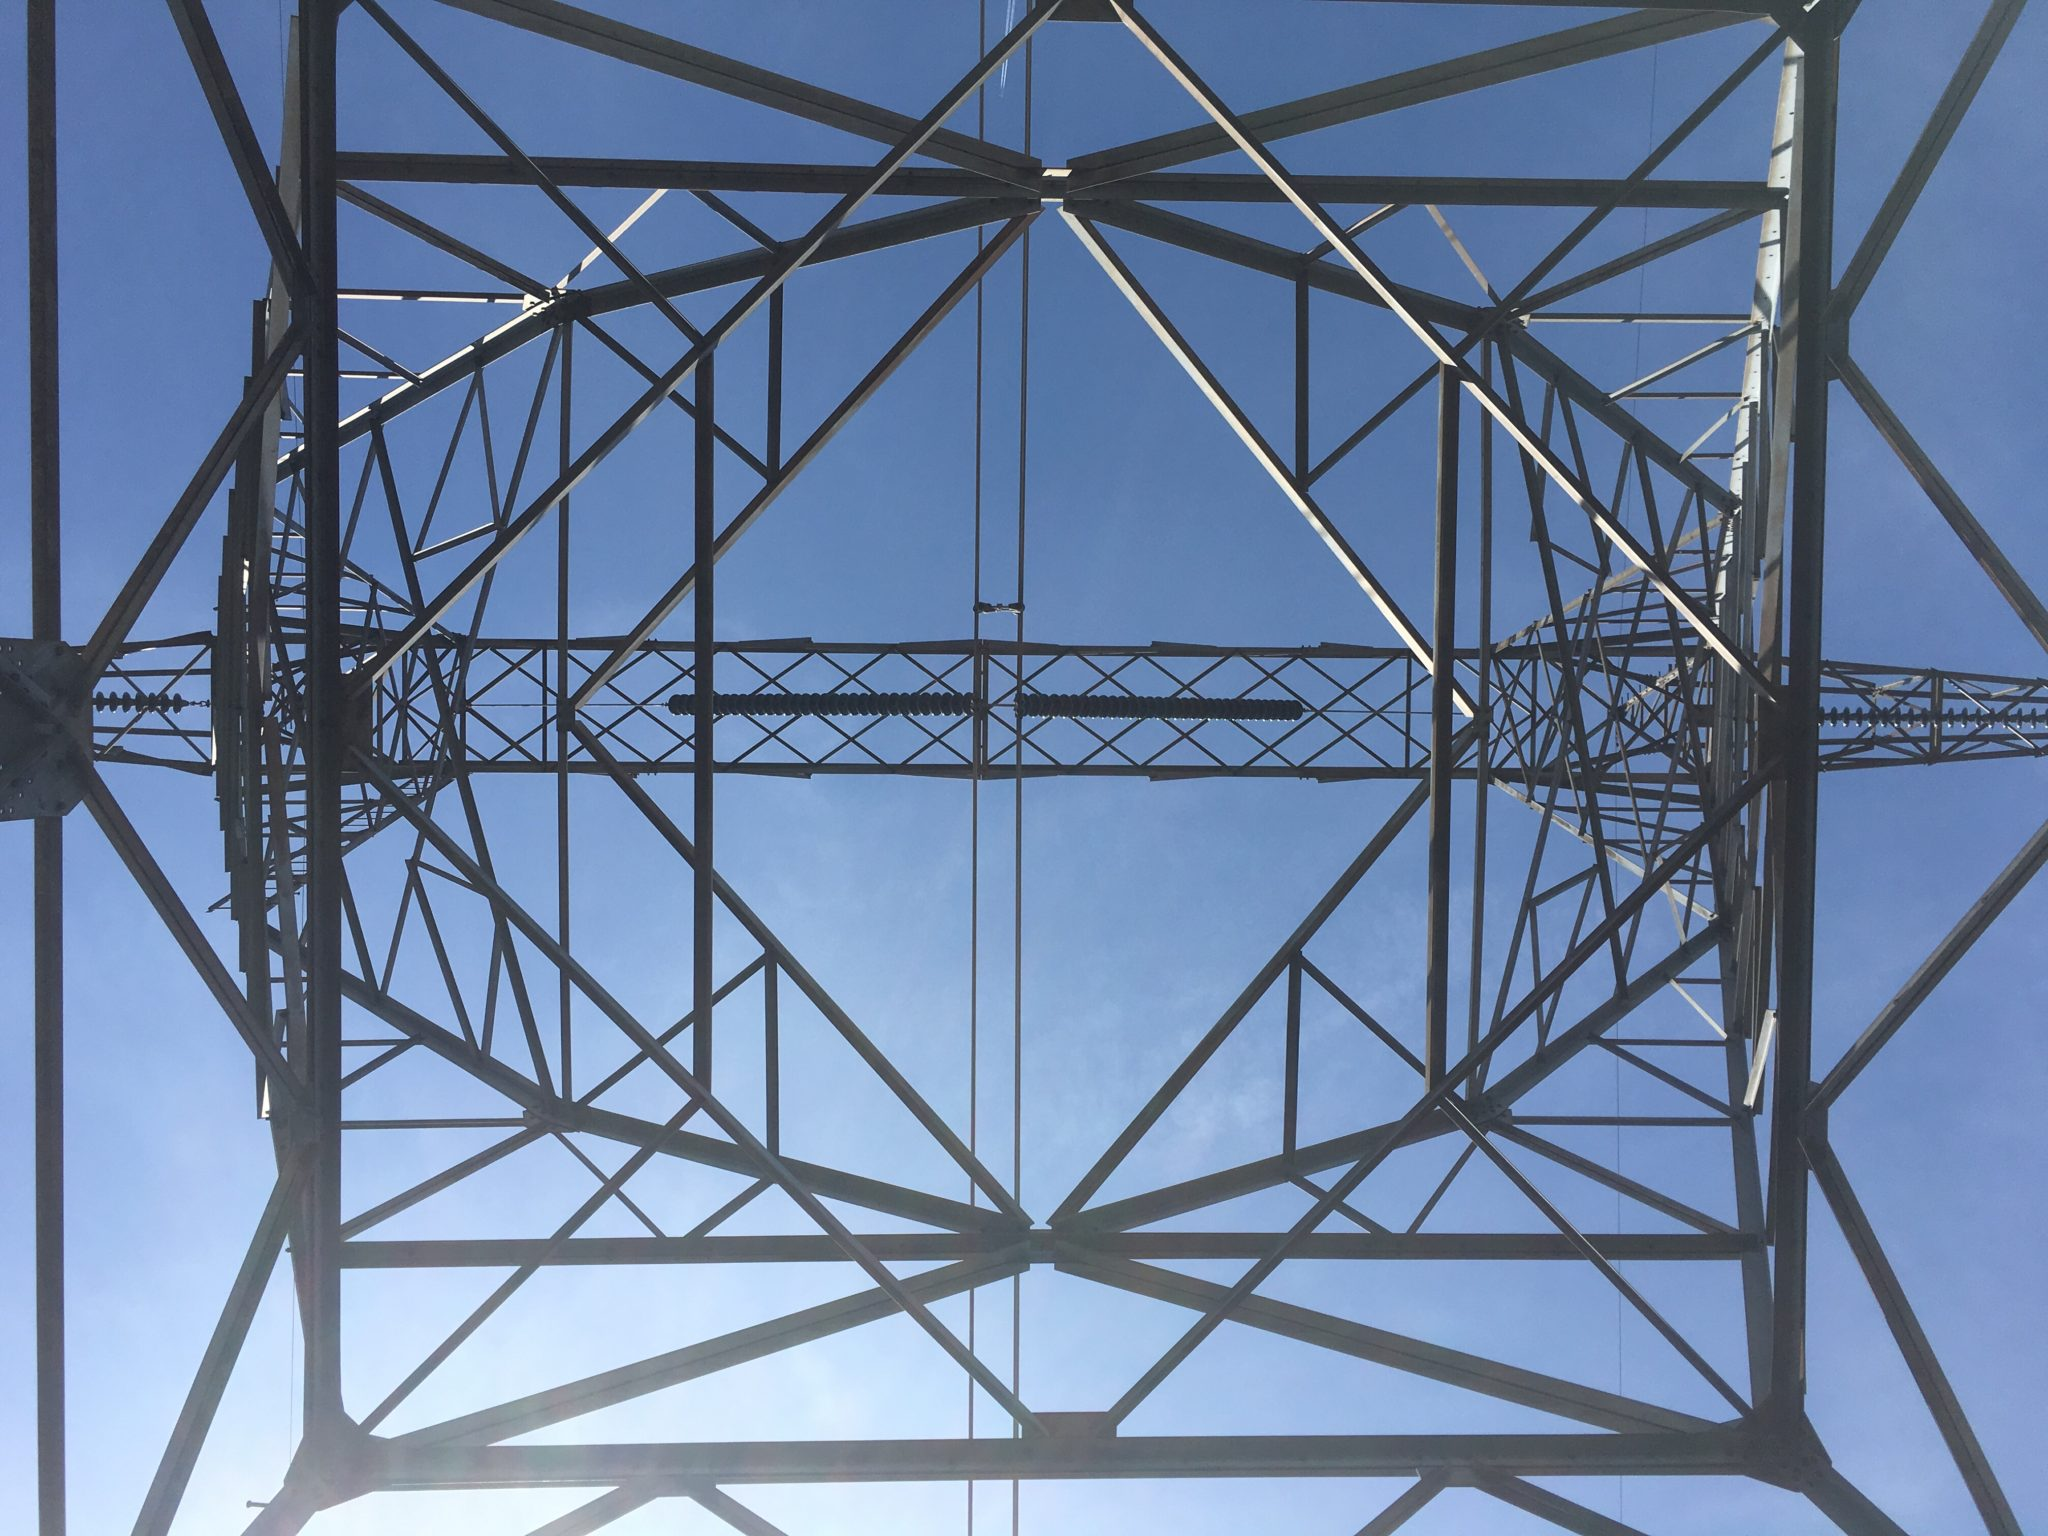 Looking up at a power line tower